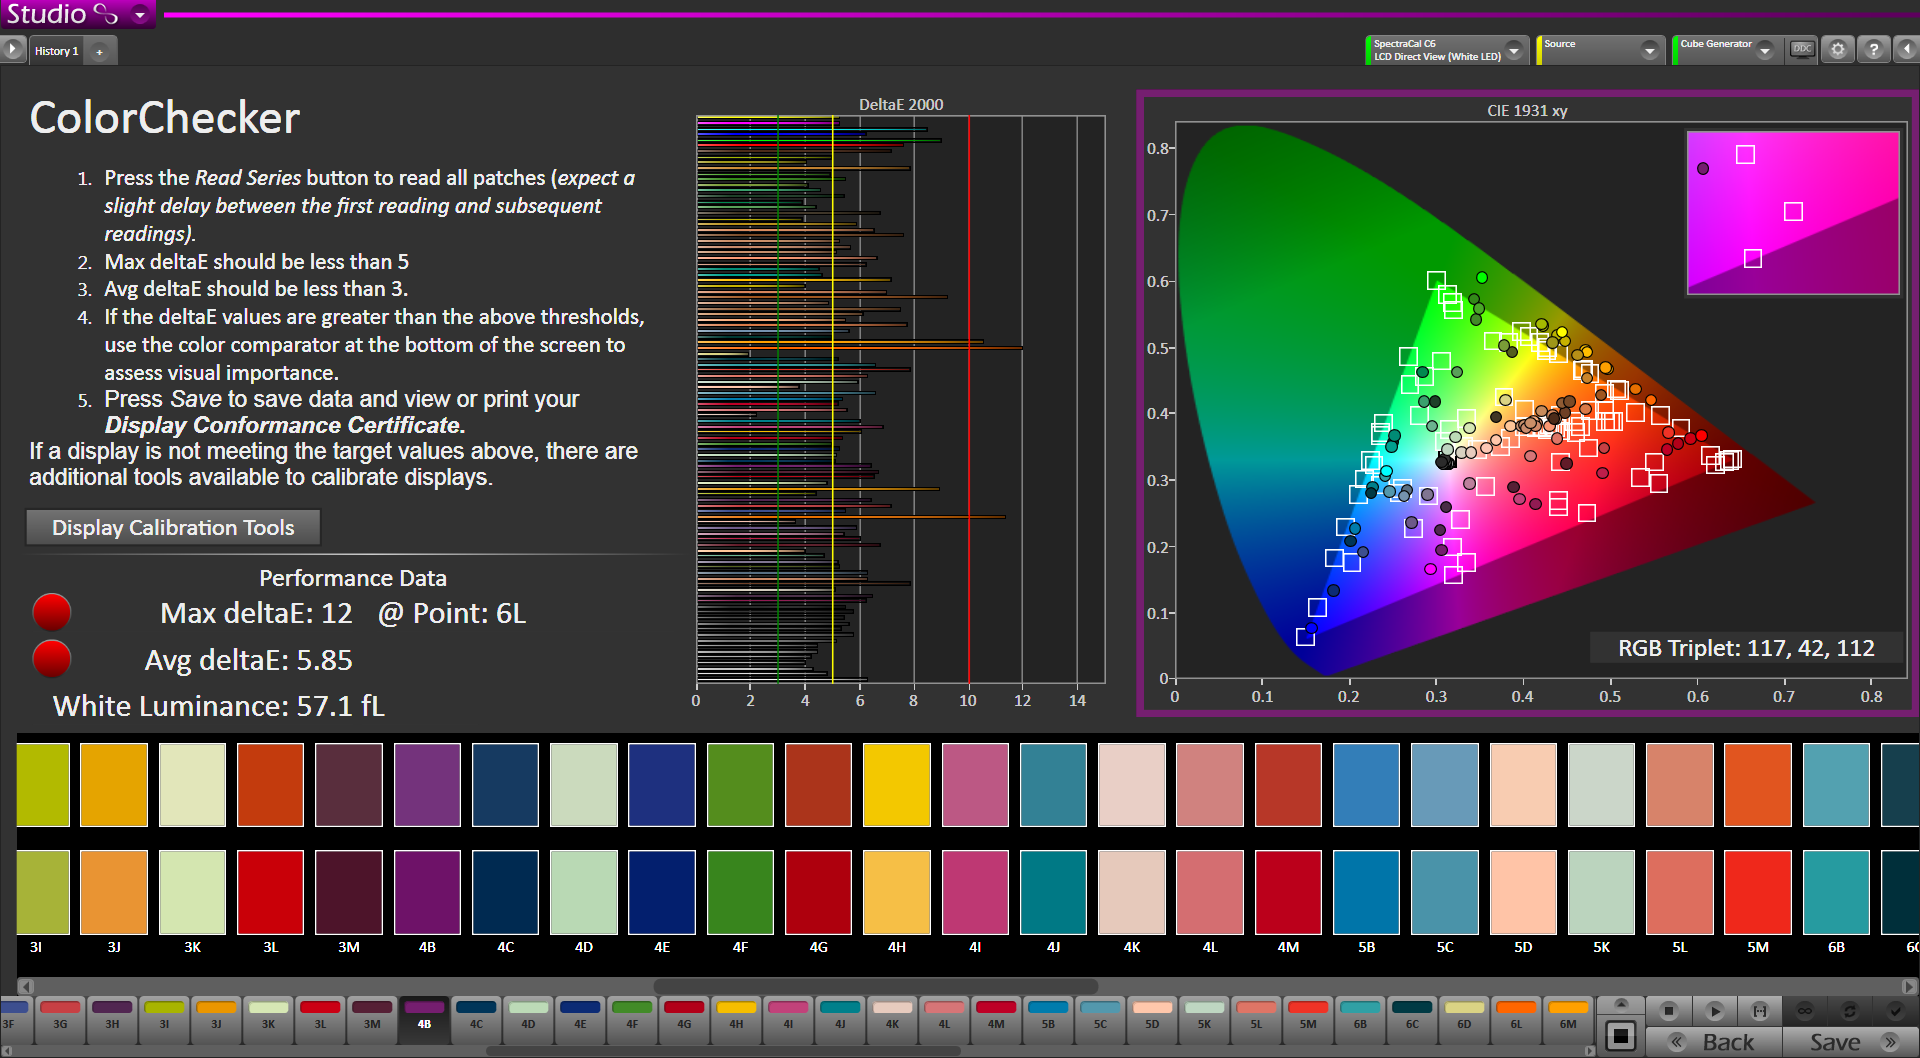 SpectraCal Releases Free ColorChecker Software by PVC News